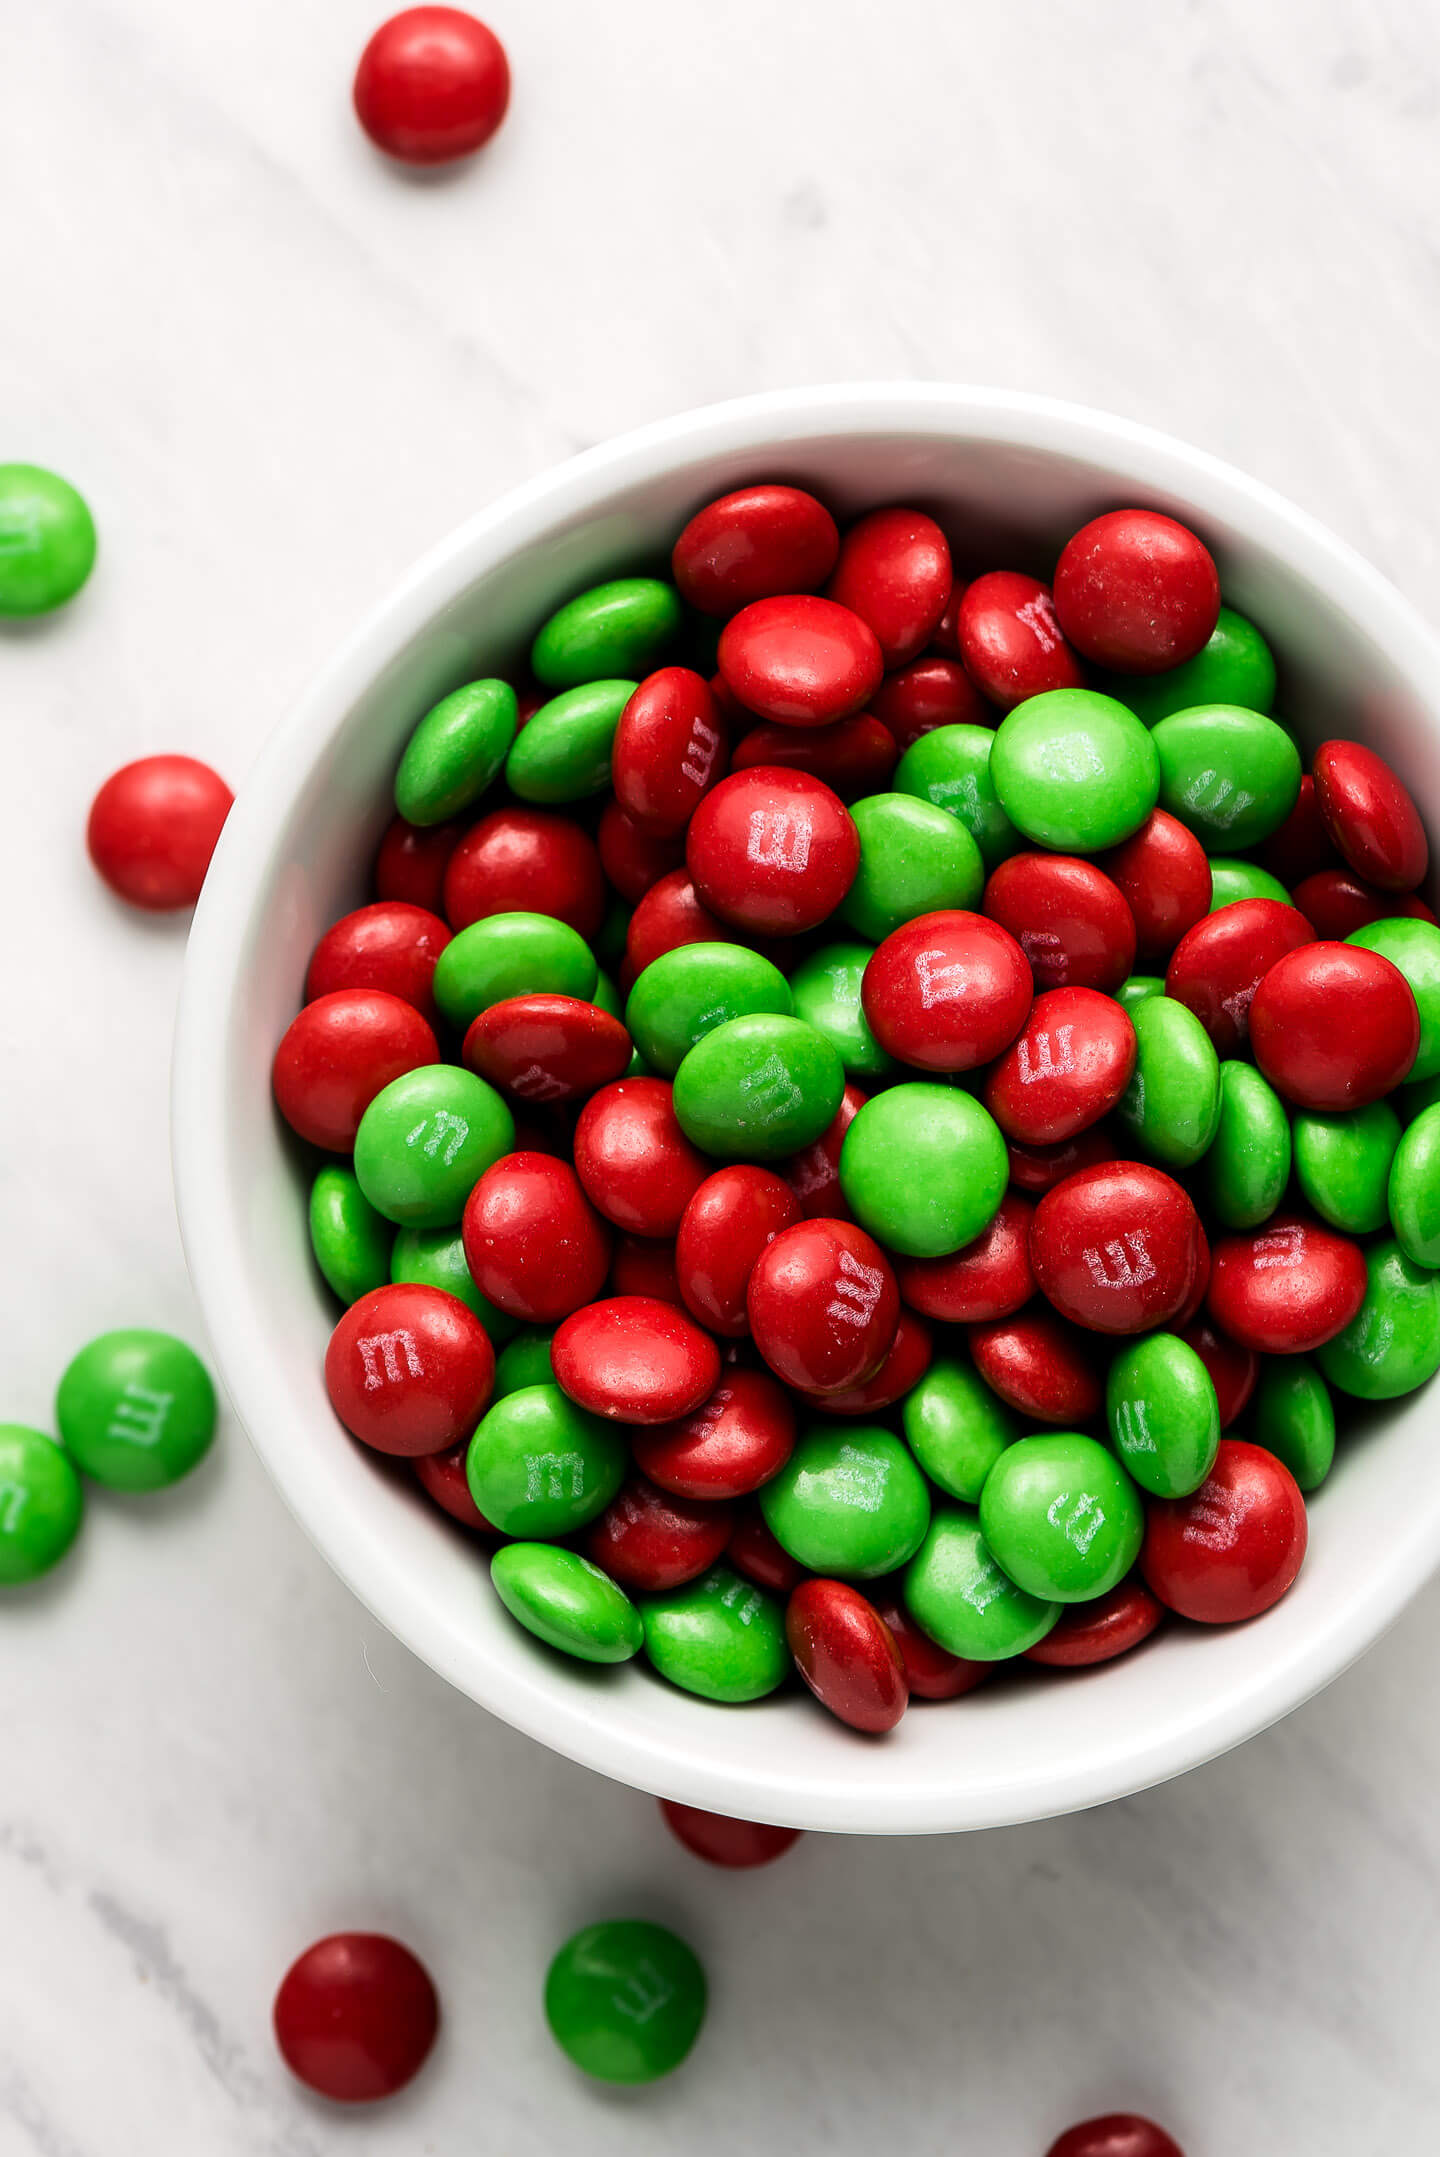 A close up of red and green Christmas M&M's in a bowl.